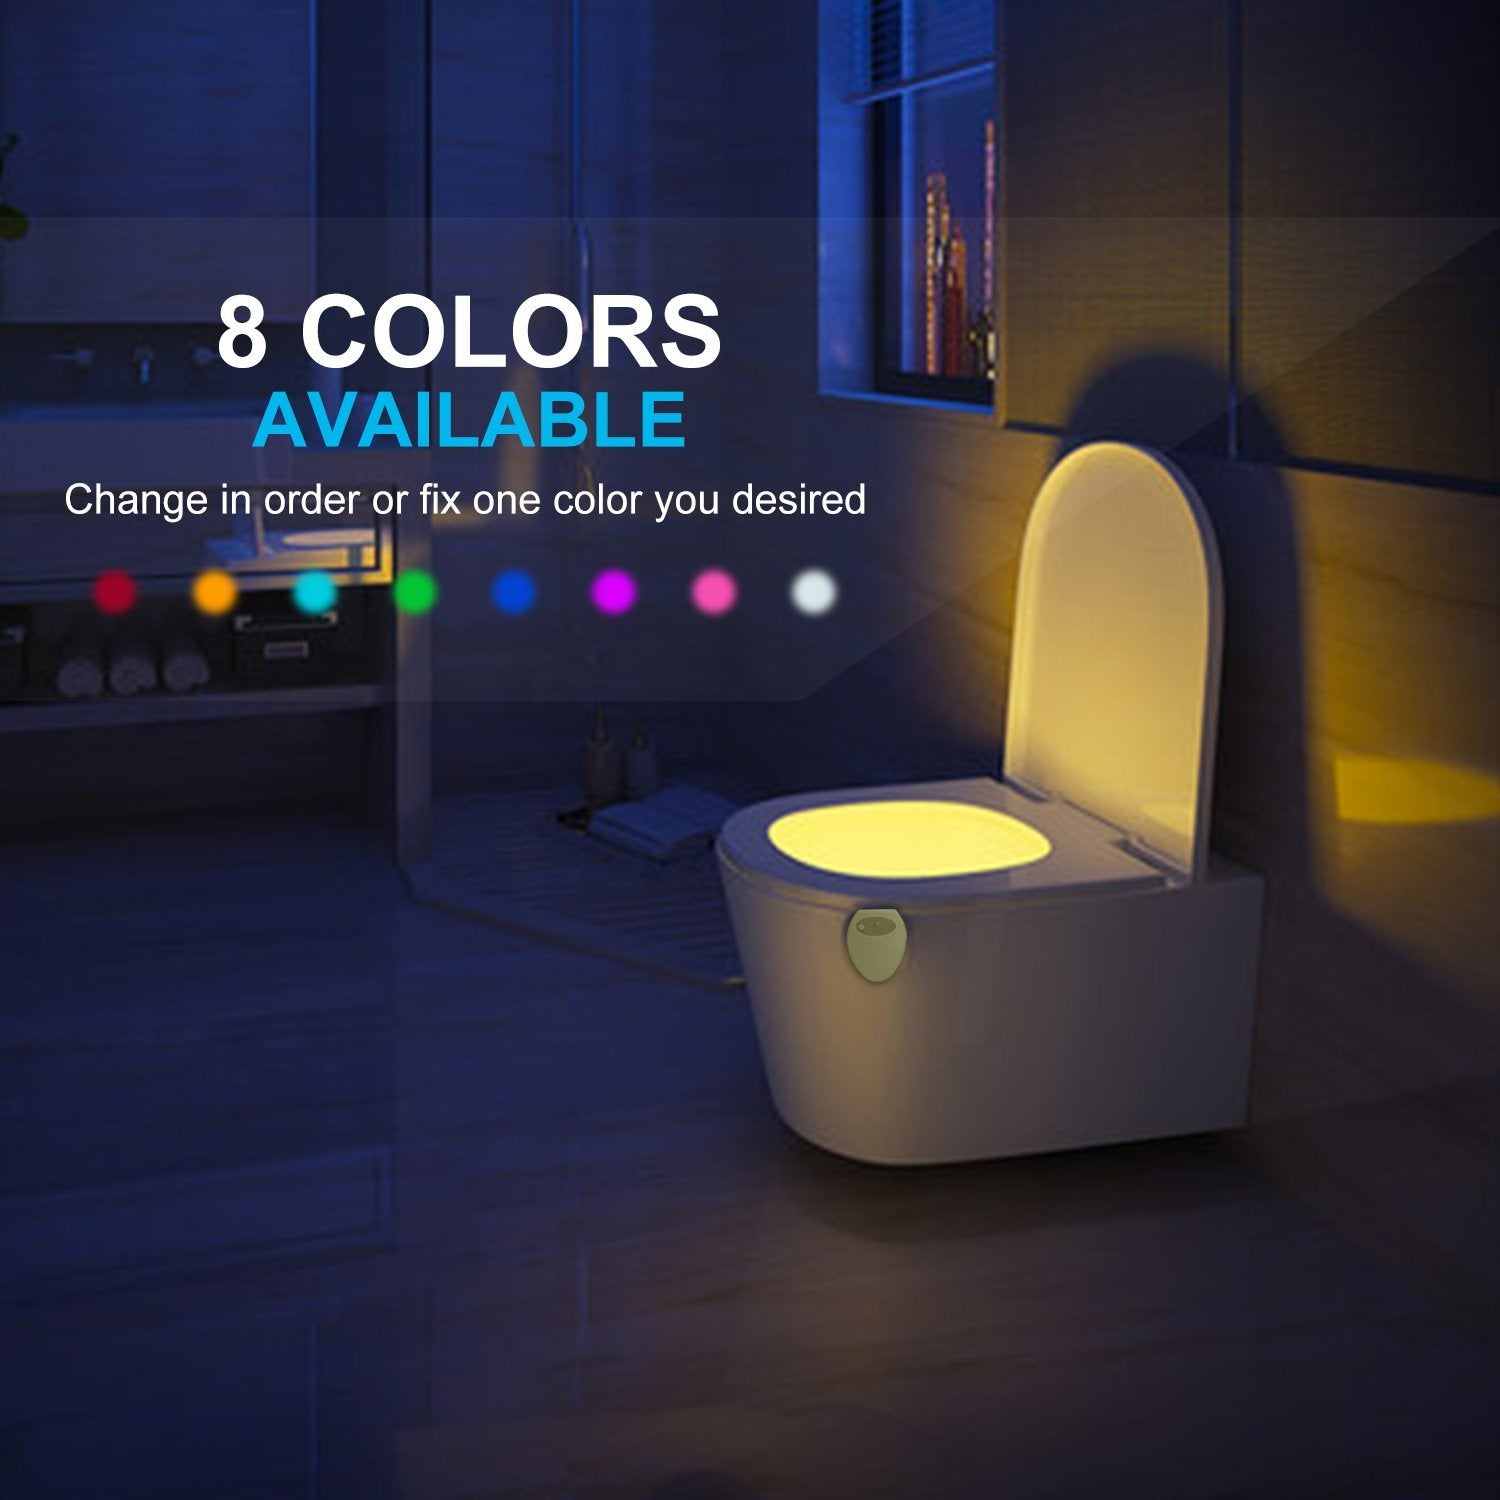 Rechargeable Toilet Night Light with Waterproof Design, LED Toilet Night Light, Toilet Bowl Light, Motion Activated in Darkness Only